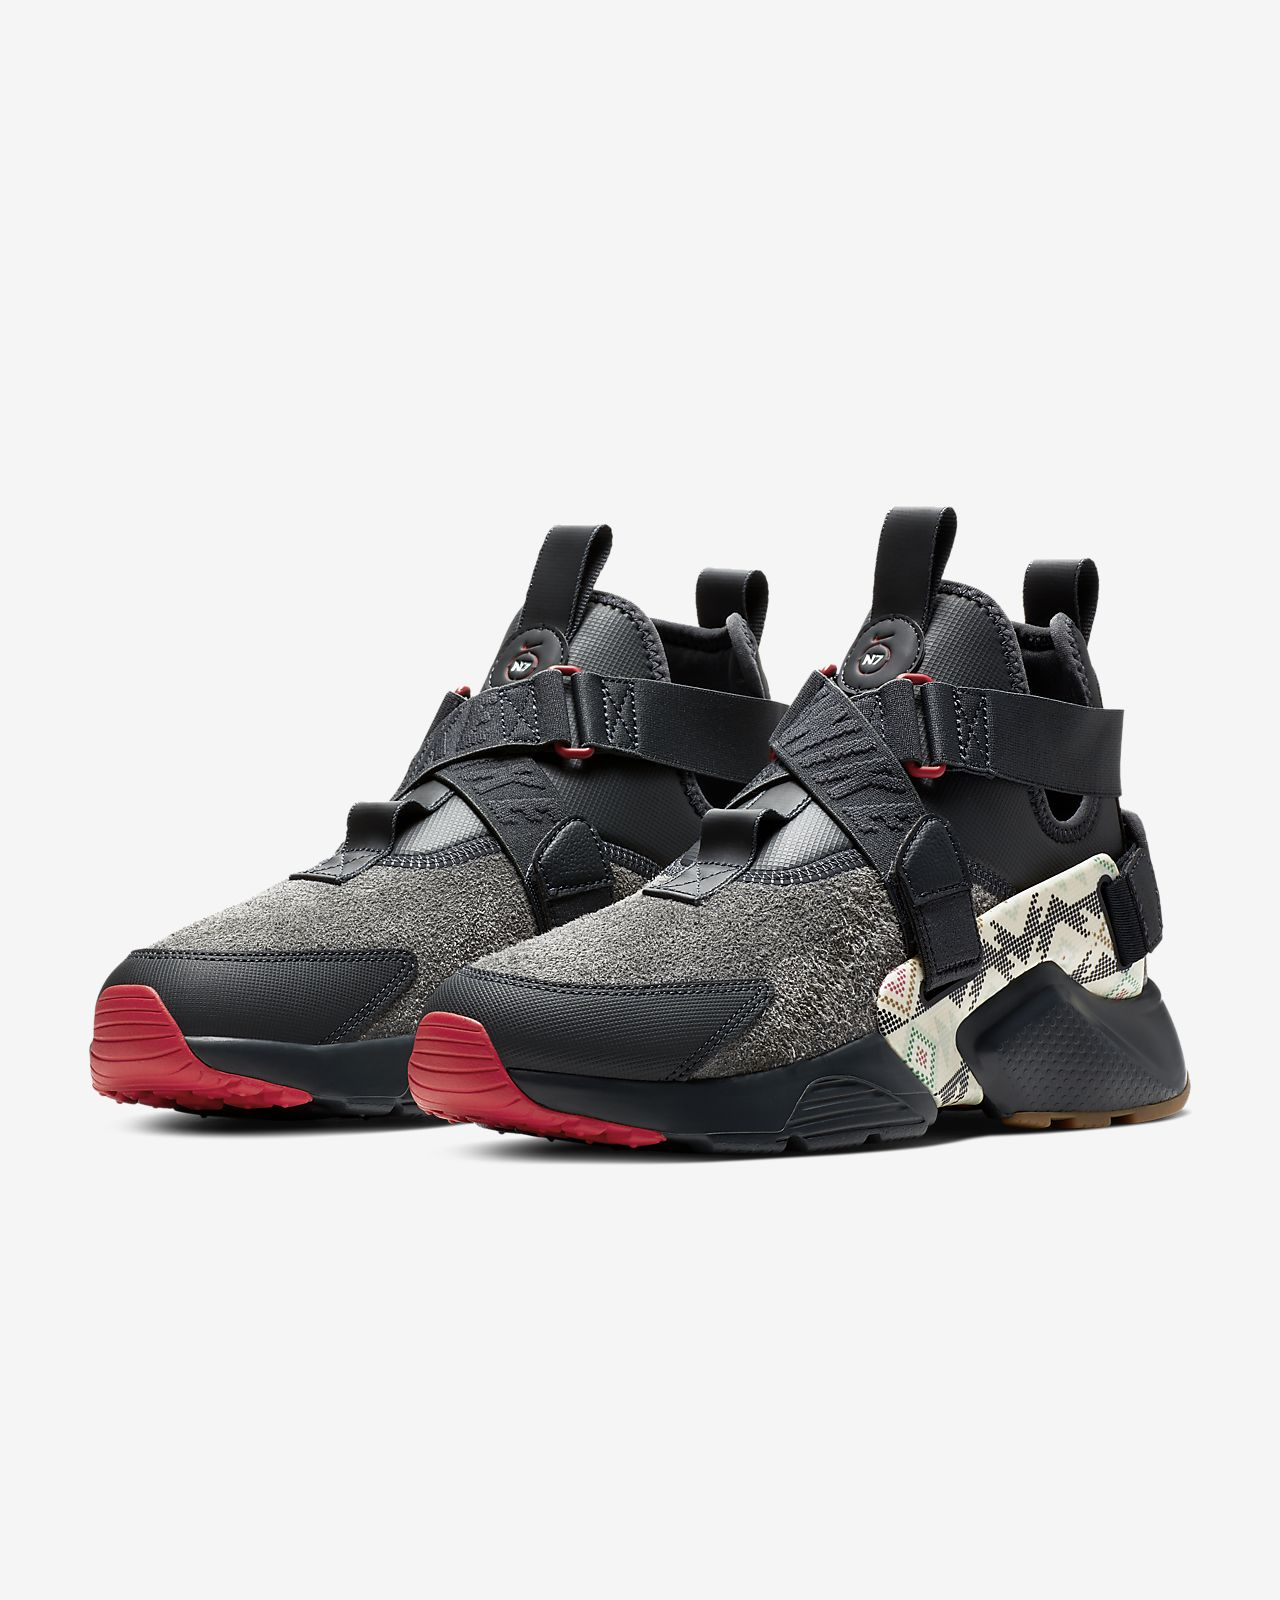 Nike Air Huarache City Utility Premium N7 Women's Shoe